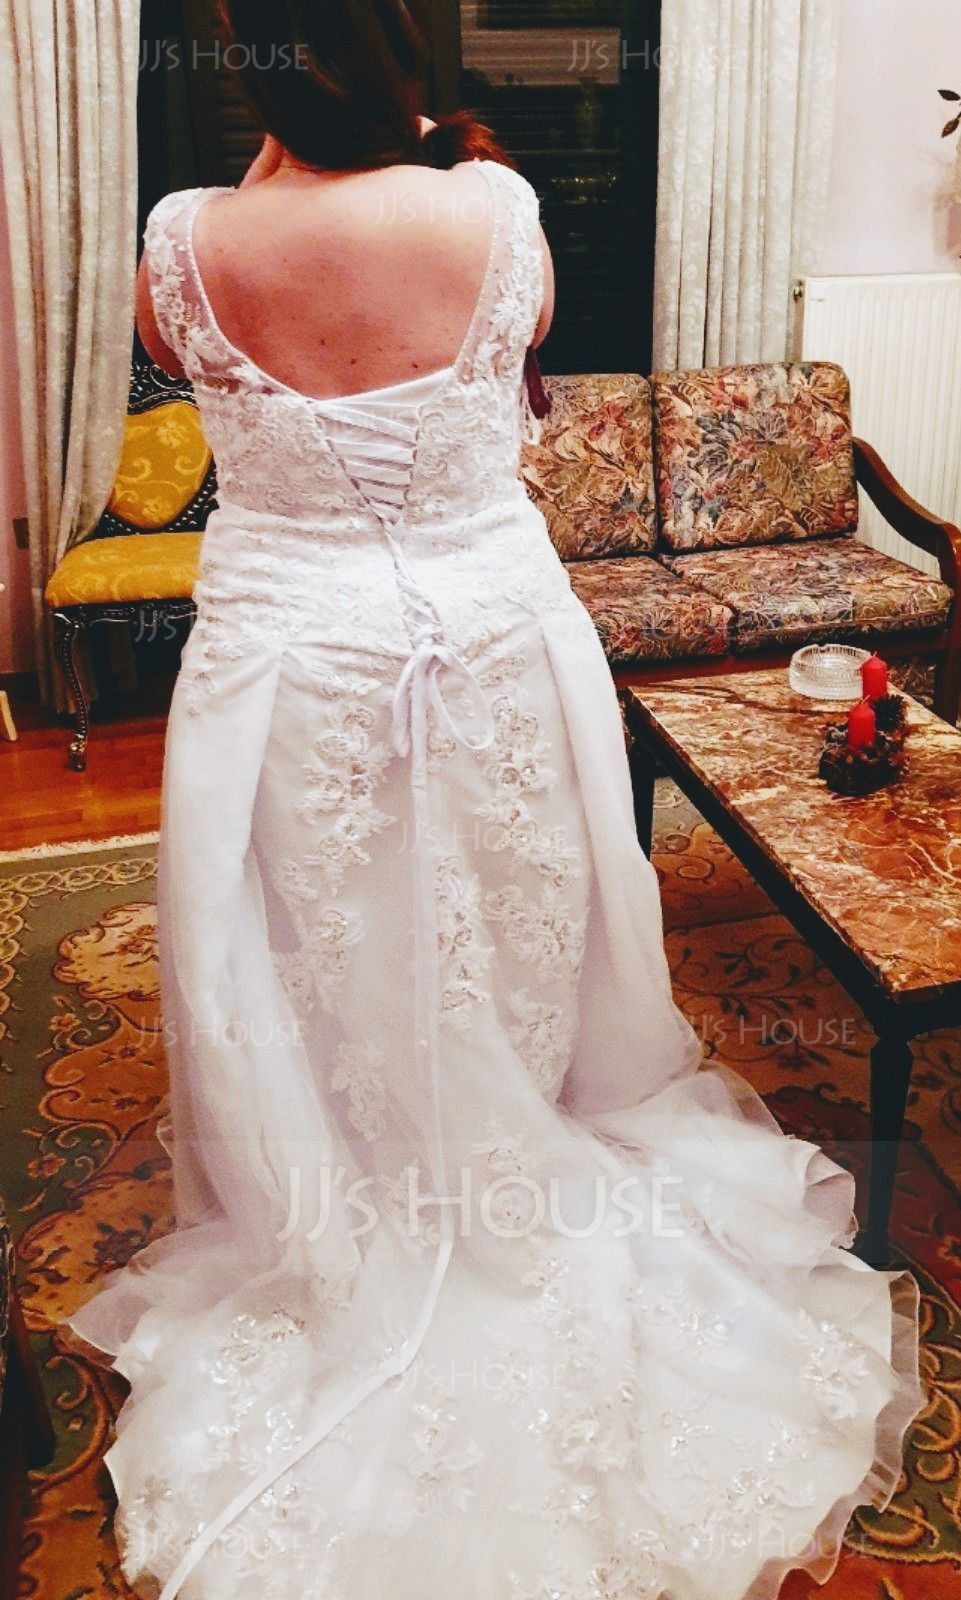 A-Line/Princess V-neck Court Train Tulle Lace Wedding Dress With Beading Sequins (002117023)